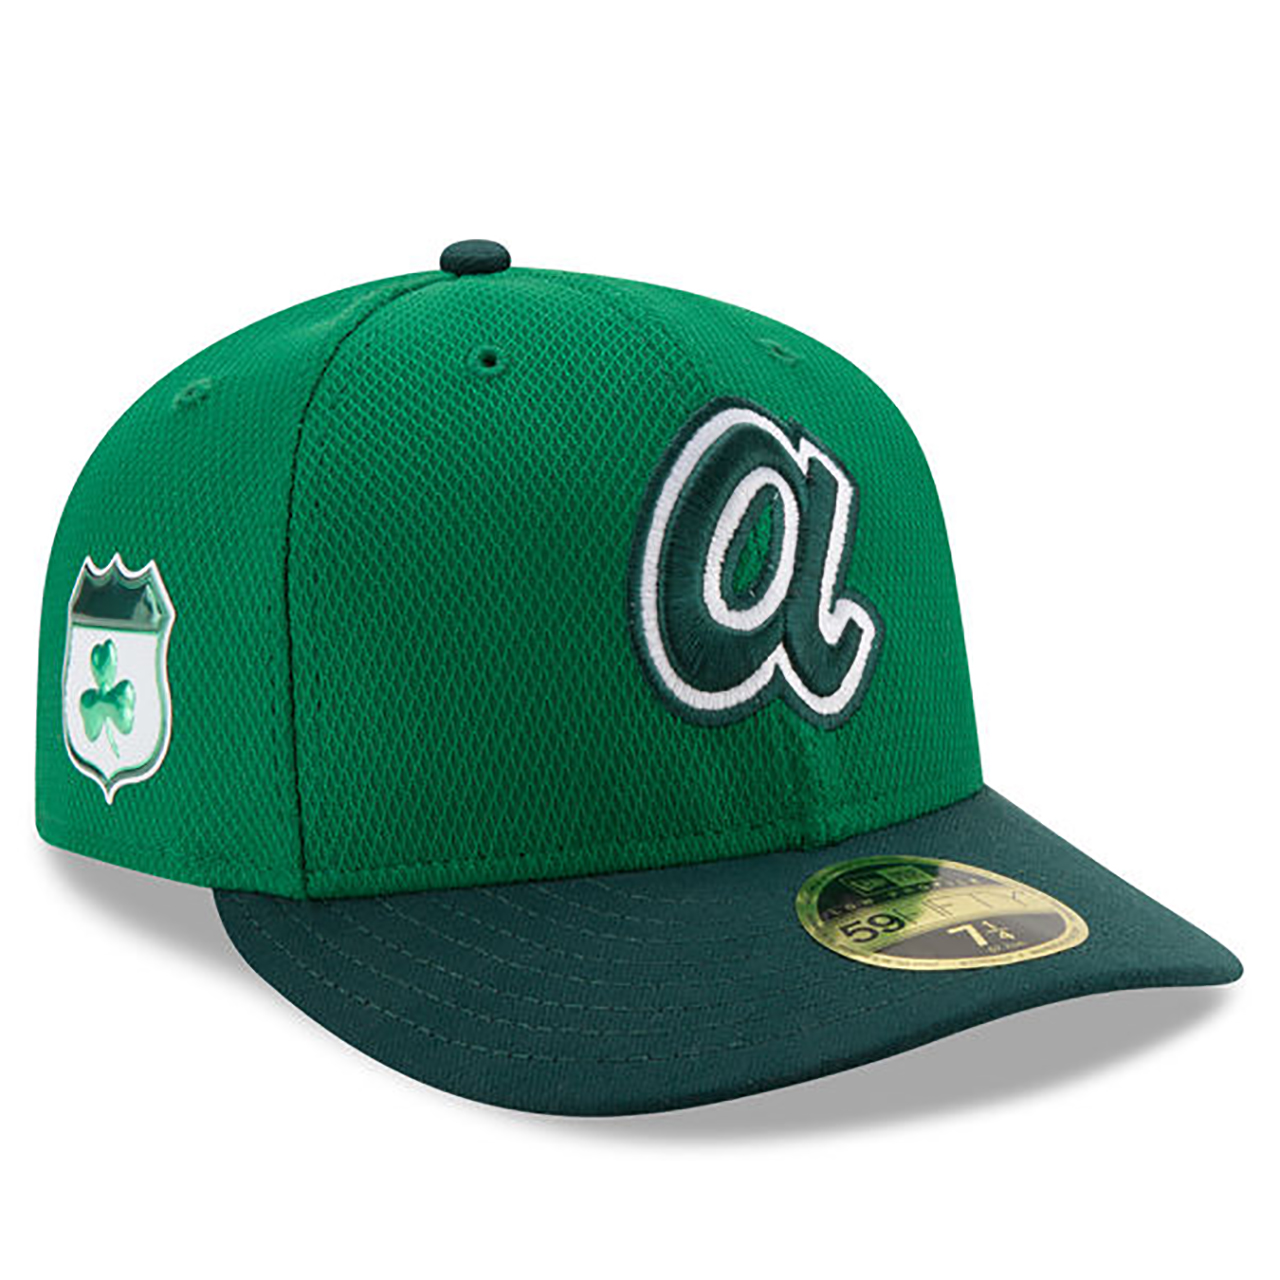 Braves Hats: MLBShop.com Is Here To Help You Celebrate St. Patrick's